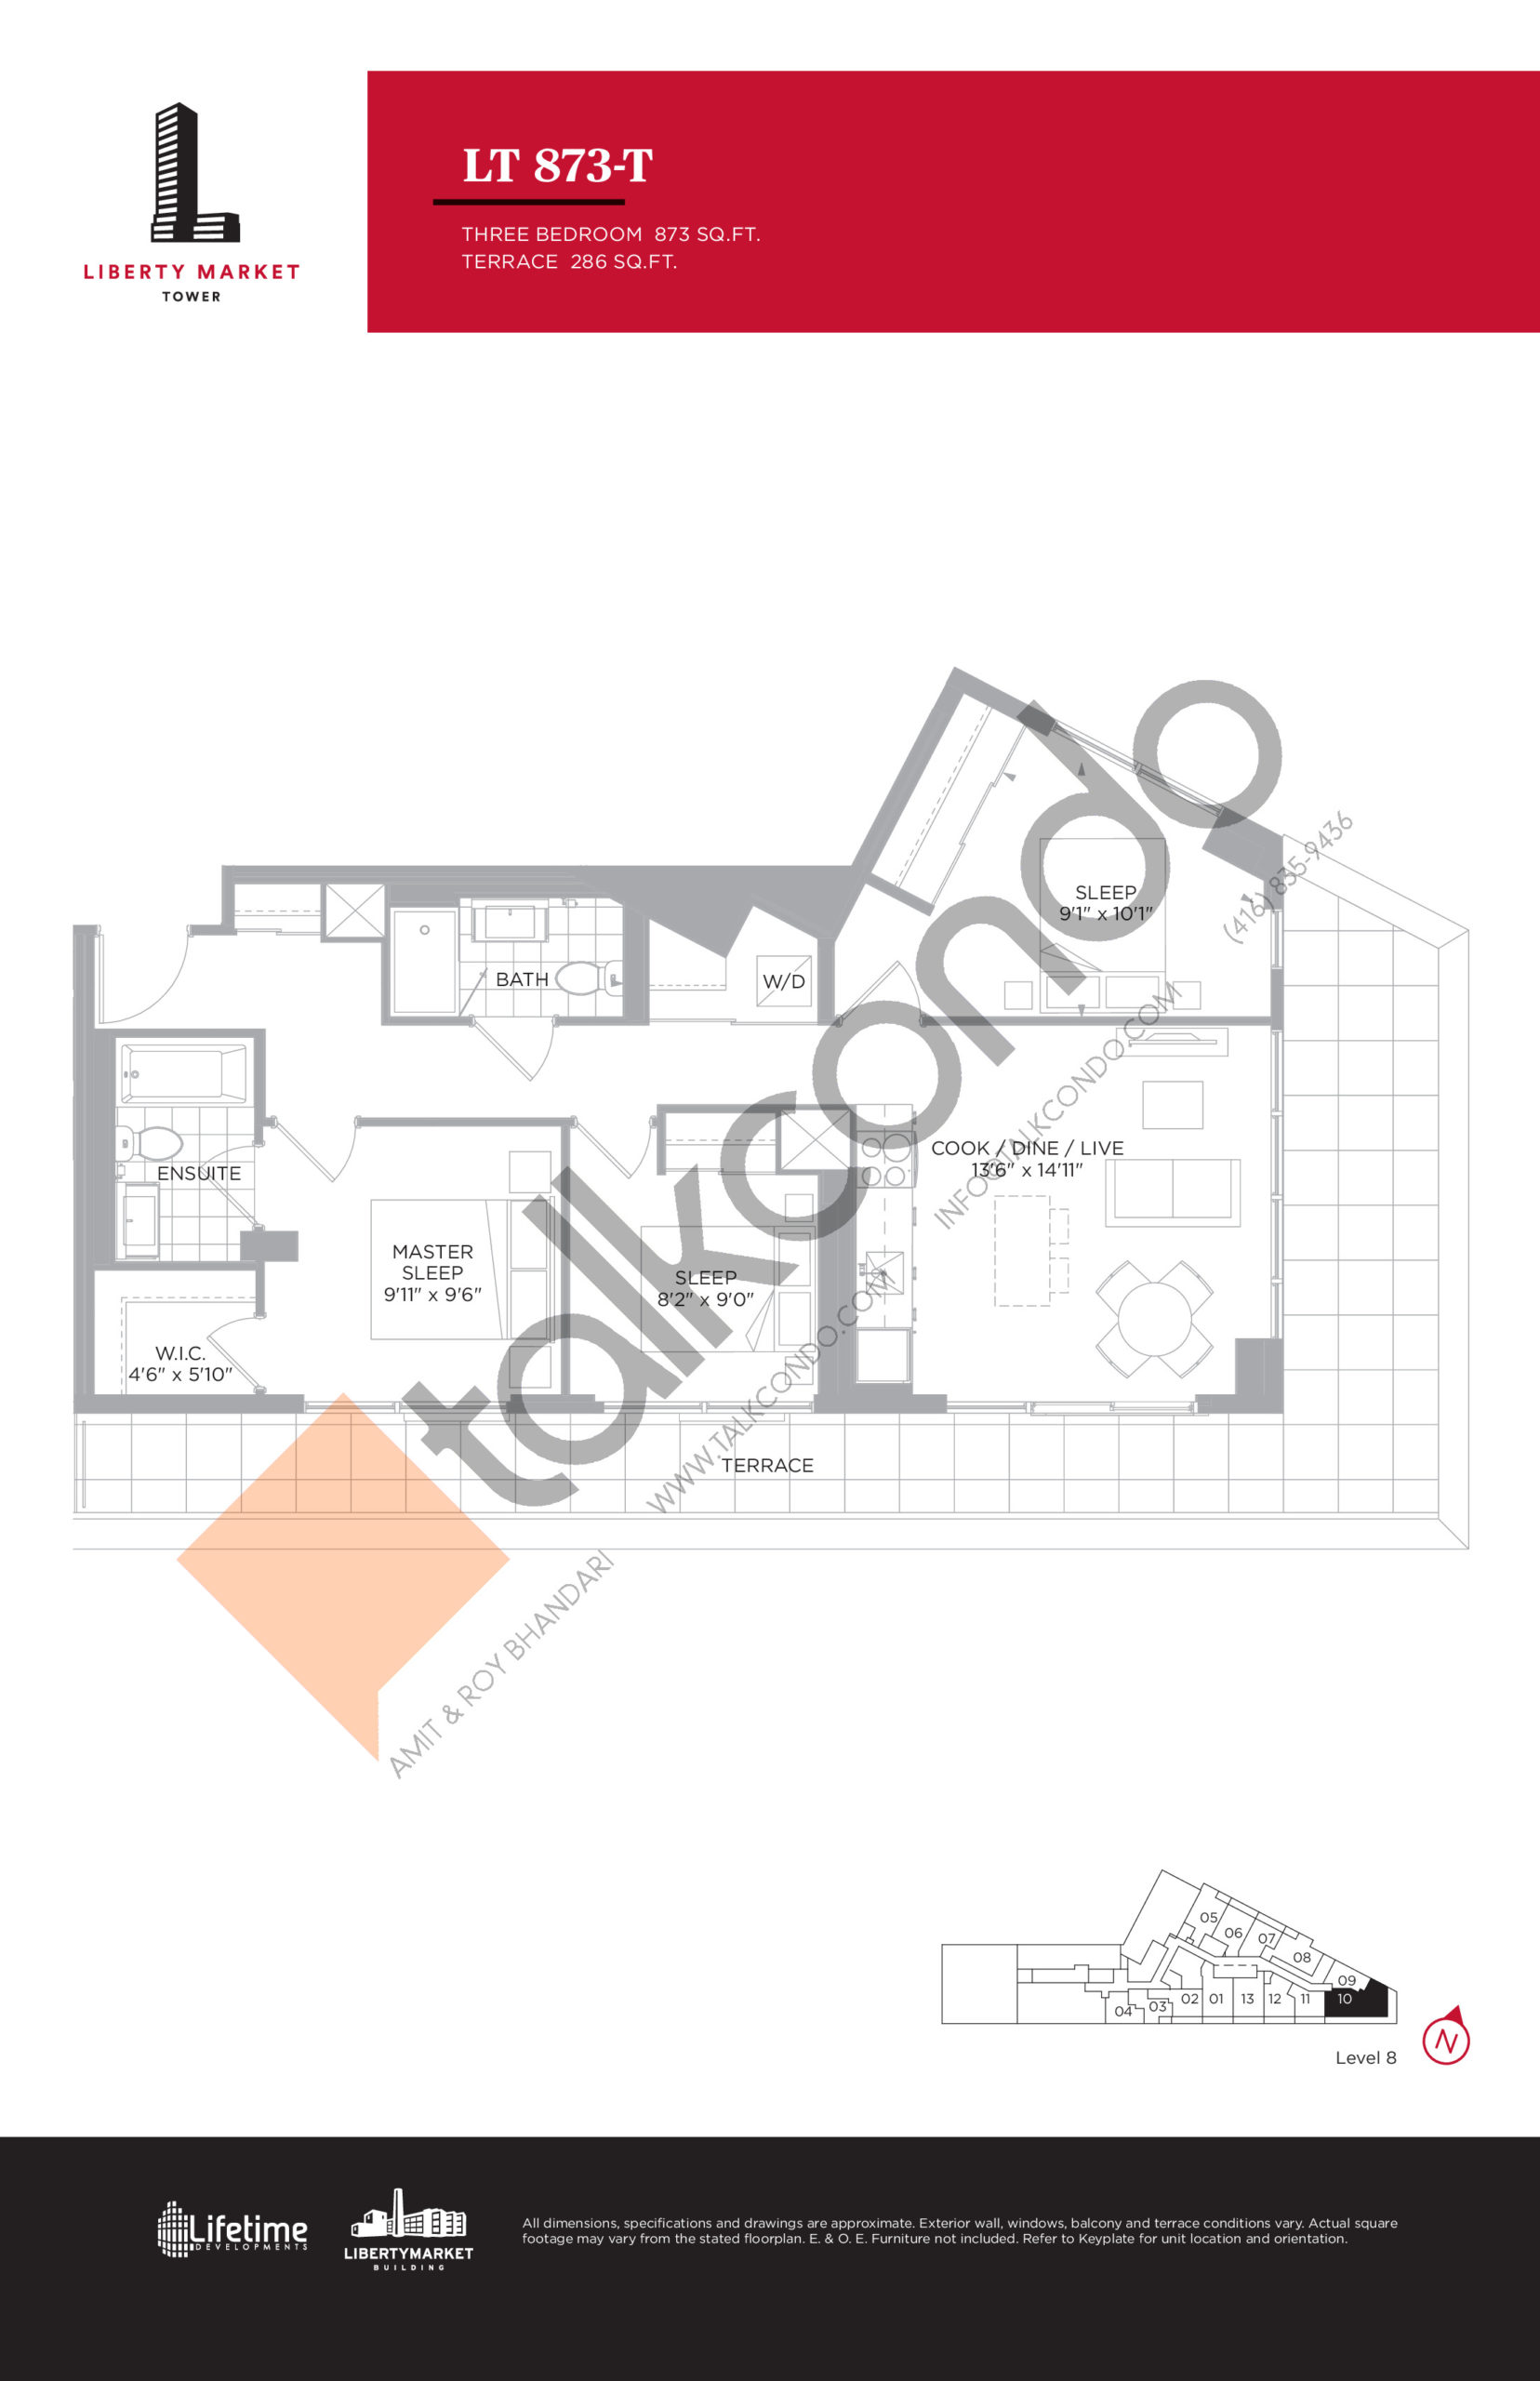 LT 873-T - Terrace Collection Floor Plan at Liberty Market Tower Condos - 873 sq.ft